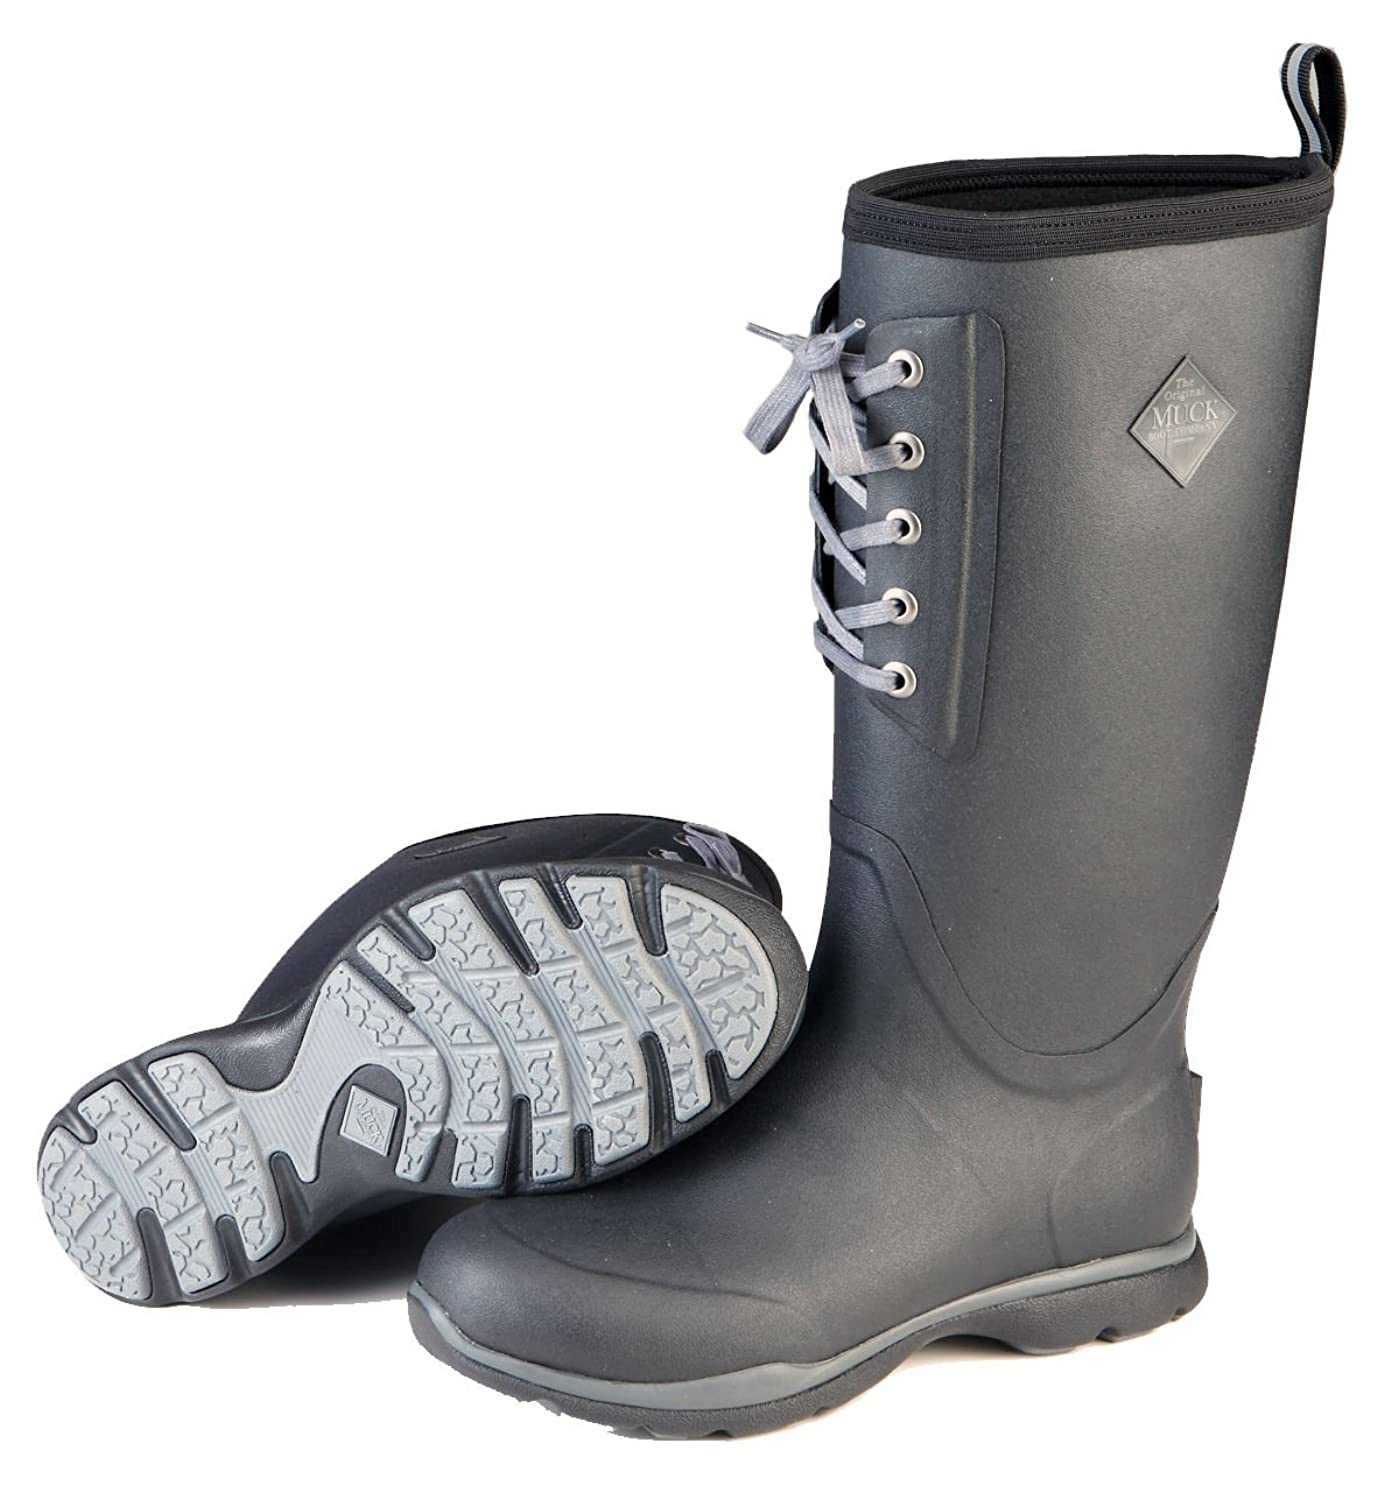 Muck Arctic Excursion Lace Tall Waterproof Insulated Rubber Boots